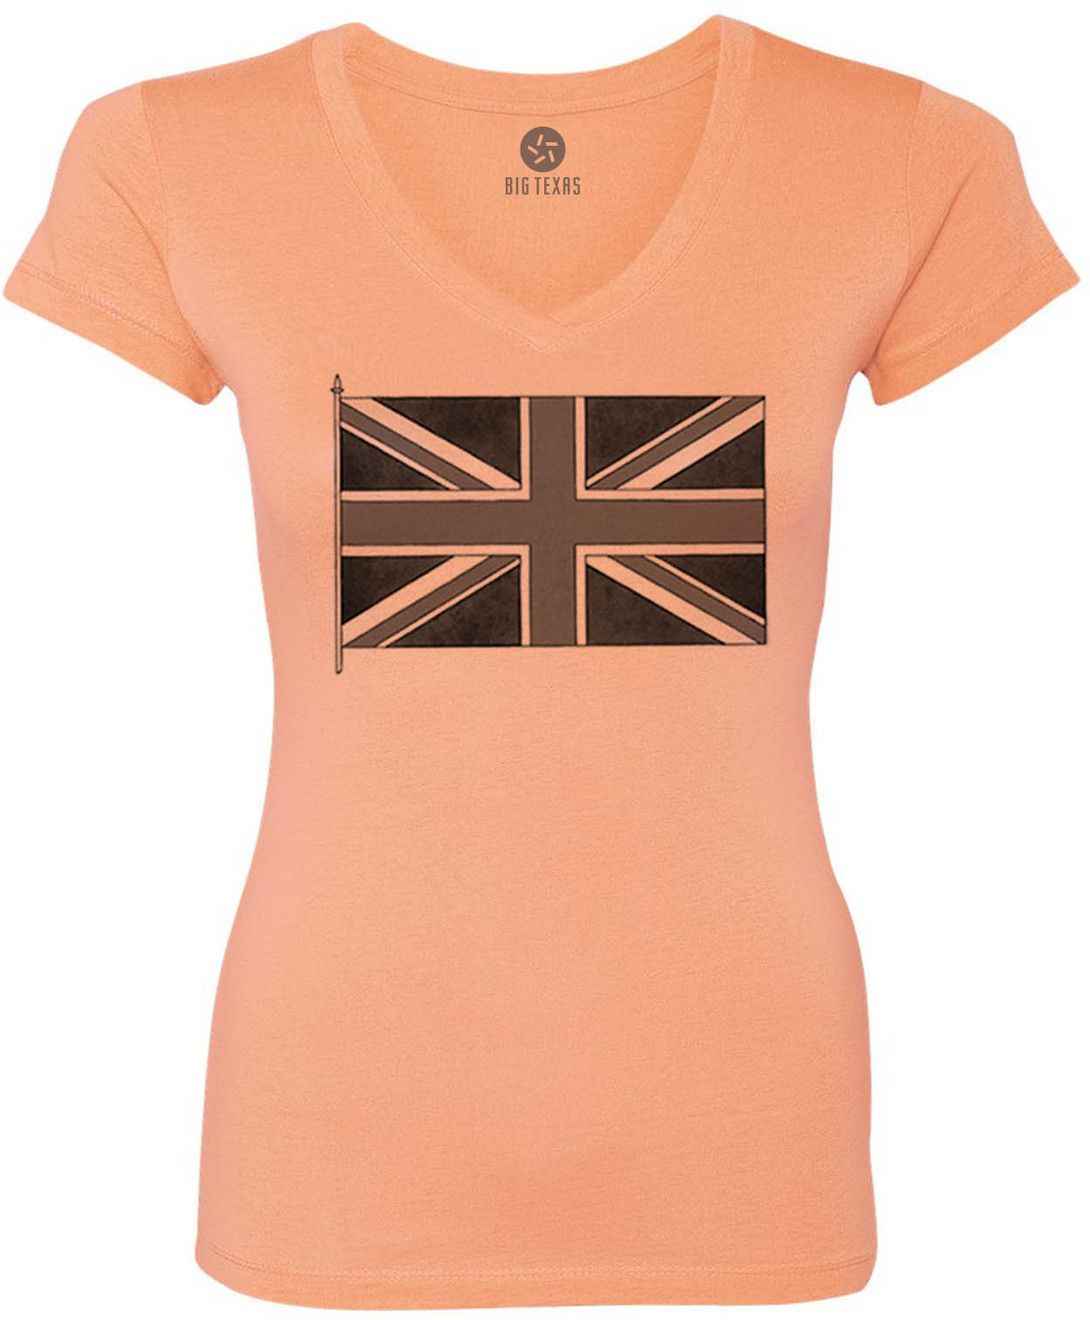 Old Union Jack (Black) Women's Short-Sleeve V-Neck T-Shirt